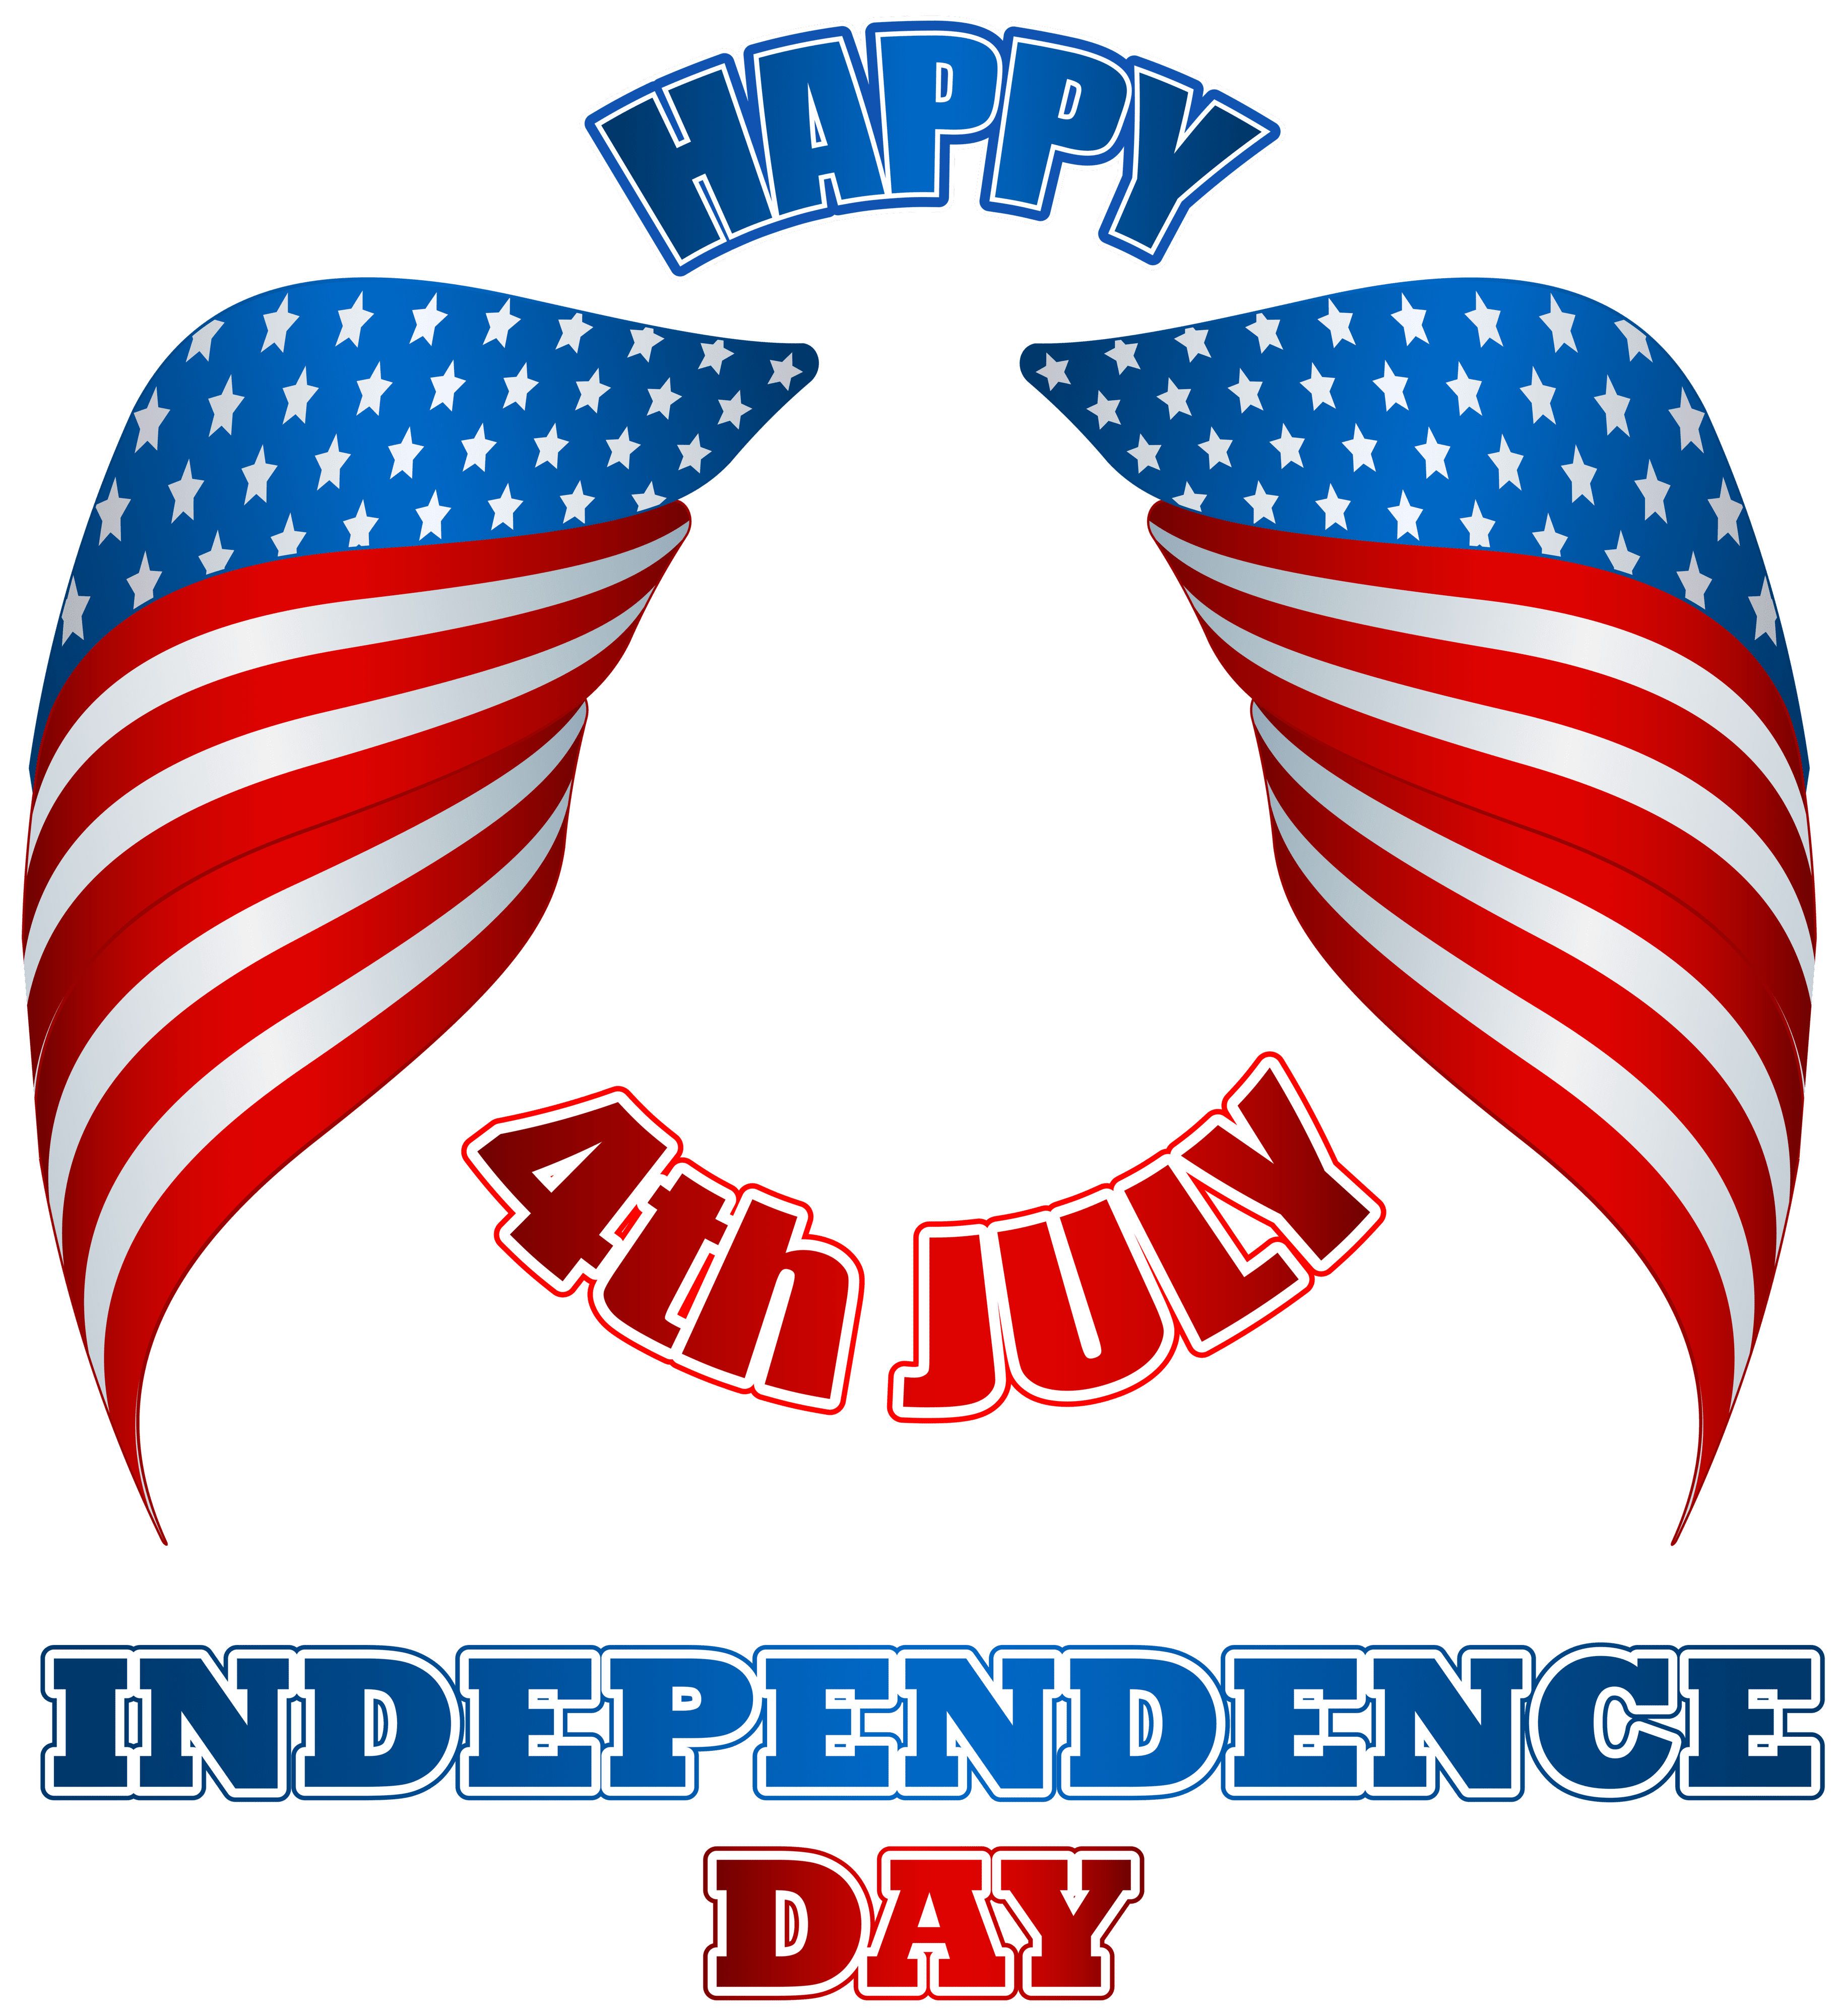 Streamers clipart 4th july.  th american wings